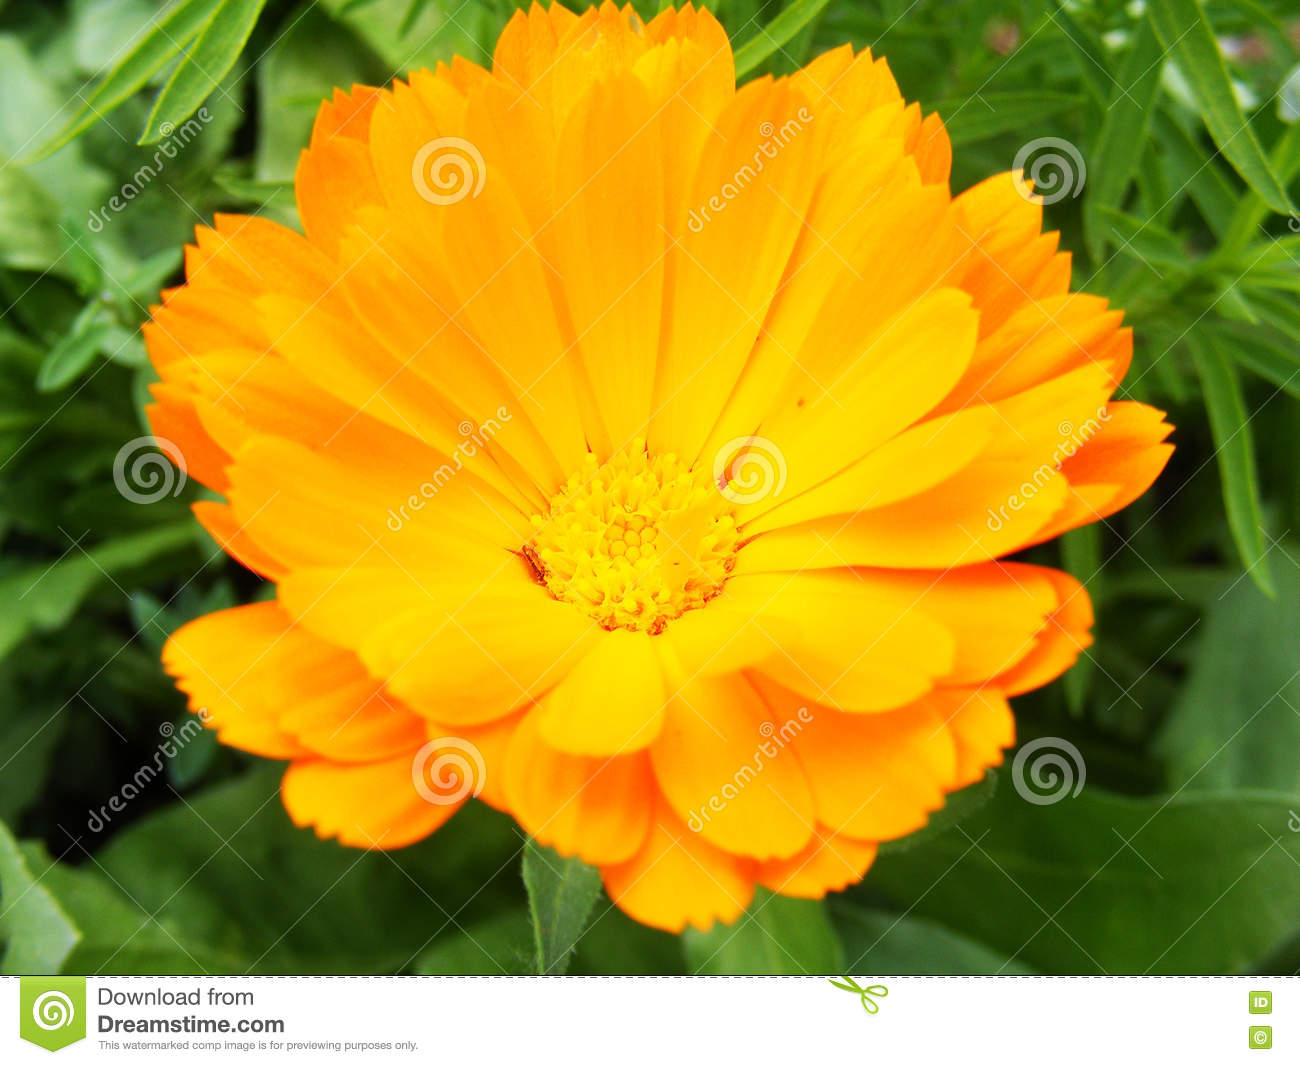 The most beautiful flower pictures for web design and logo stock the most beautiful flower pictures for web design and logo izmirmasajfo